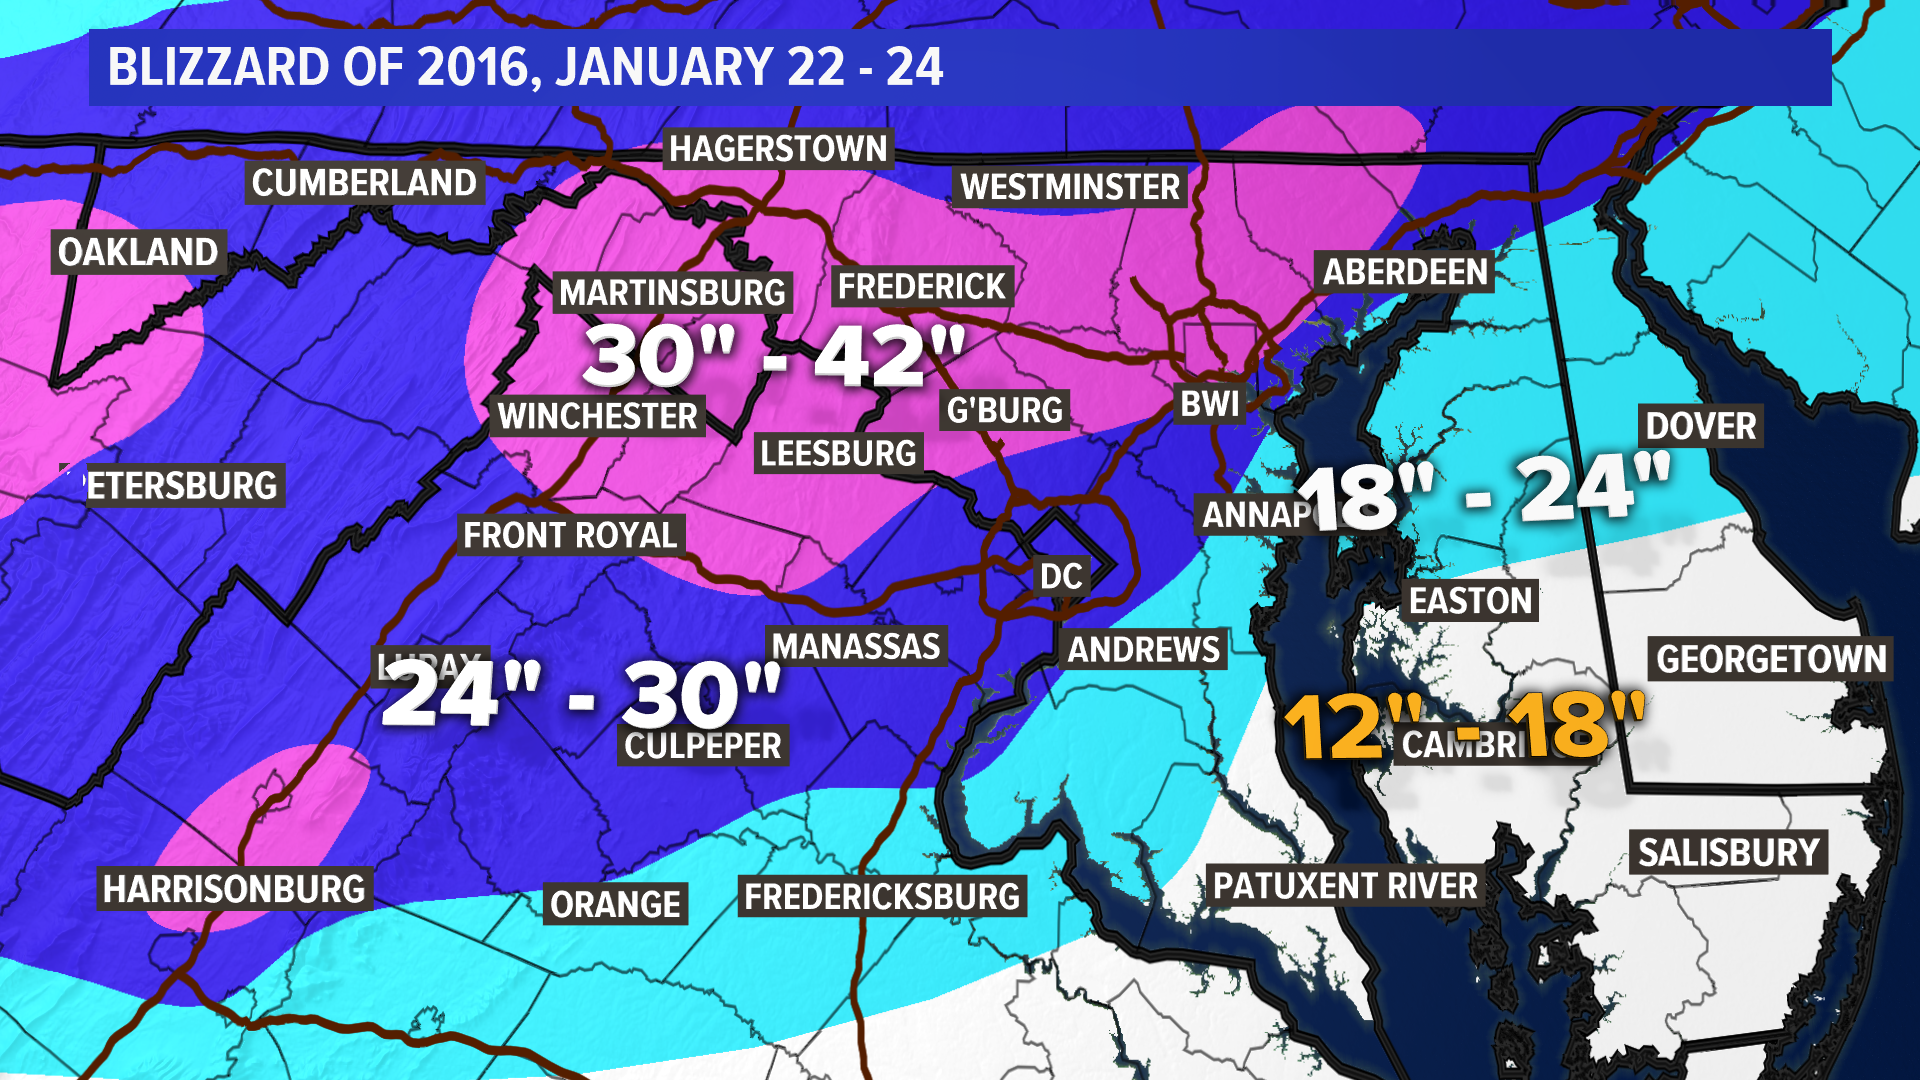 2a25084cb7d RELATED: DC Winter Forecast: Here's how much snow you can expect this year